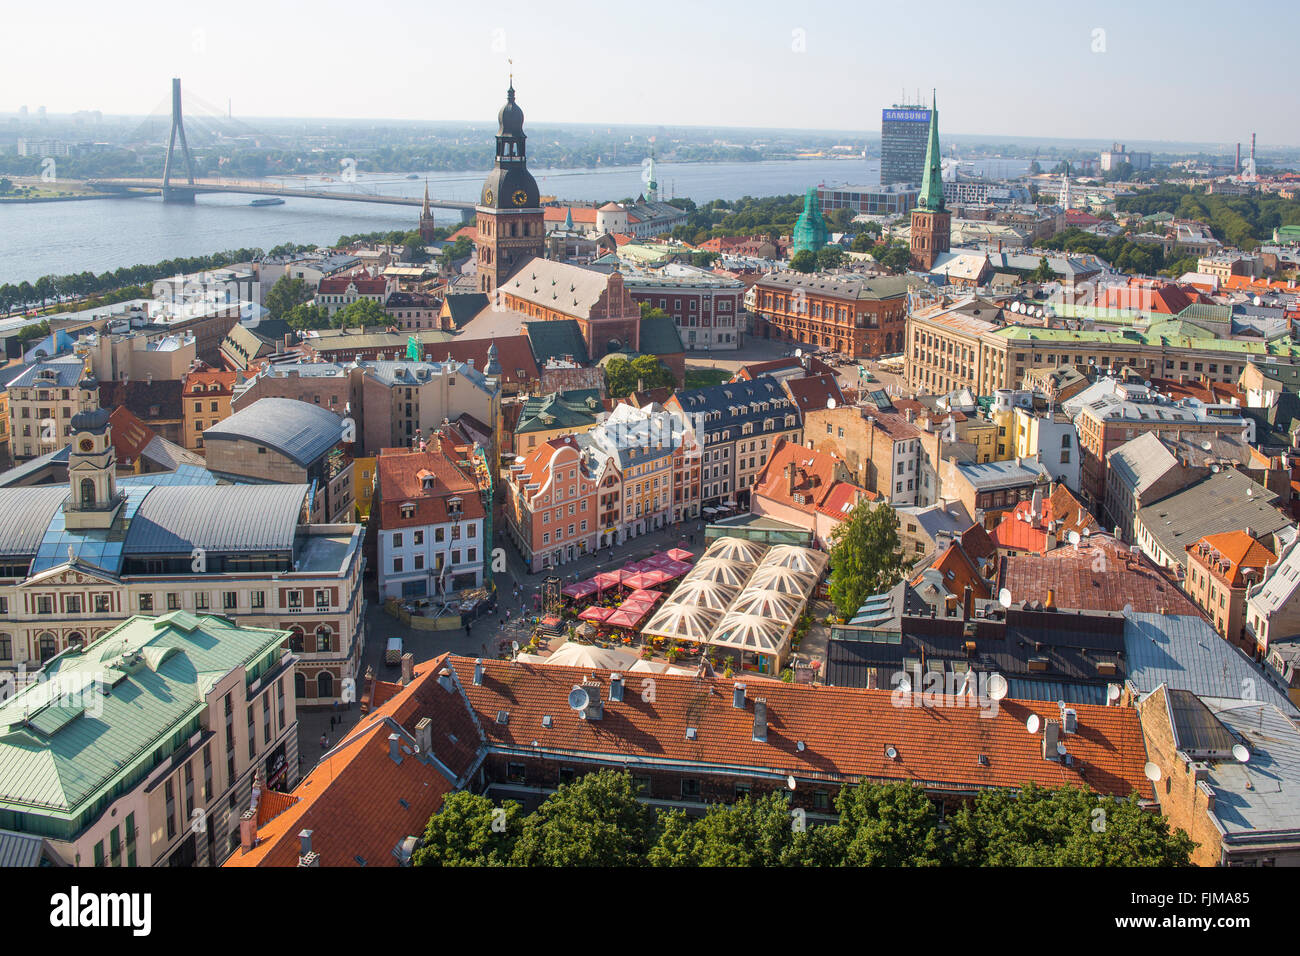 geography / travel, Latvia, Riga, view from the St. Peter's Church (Petrikirche) towards Daugava and old town, - Stock Image